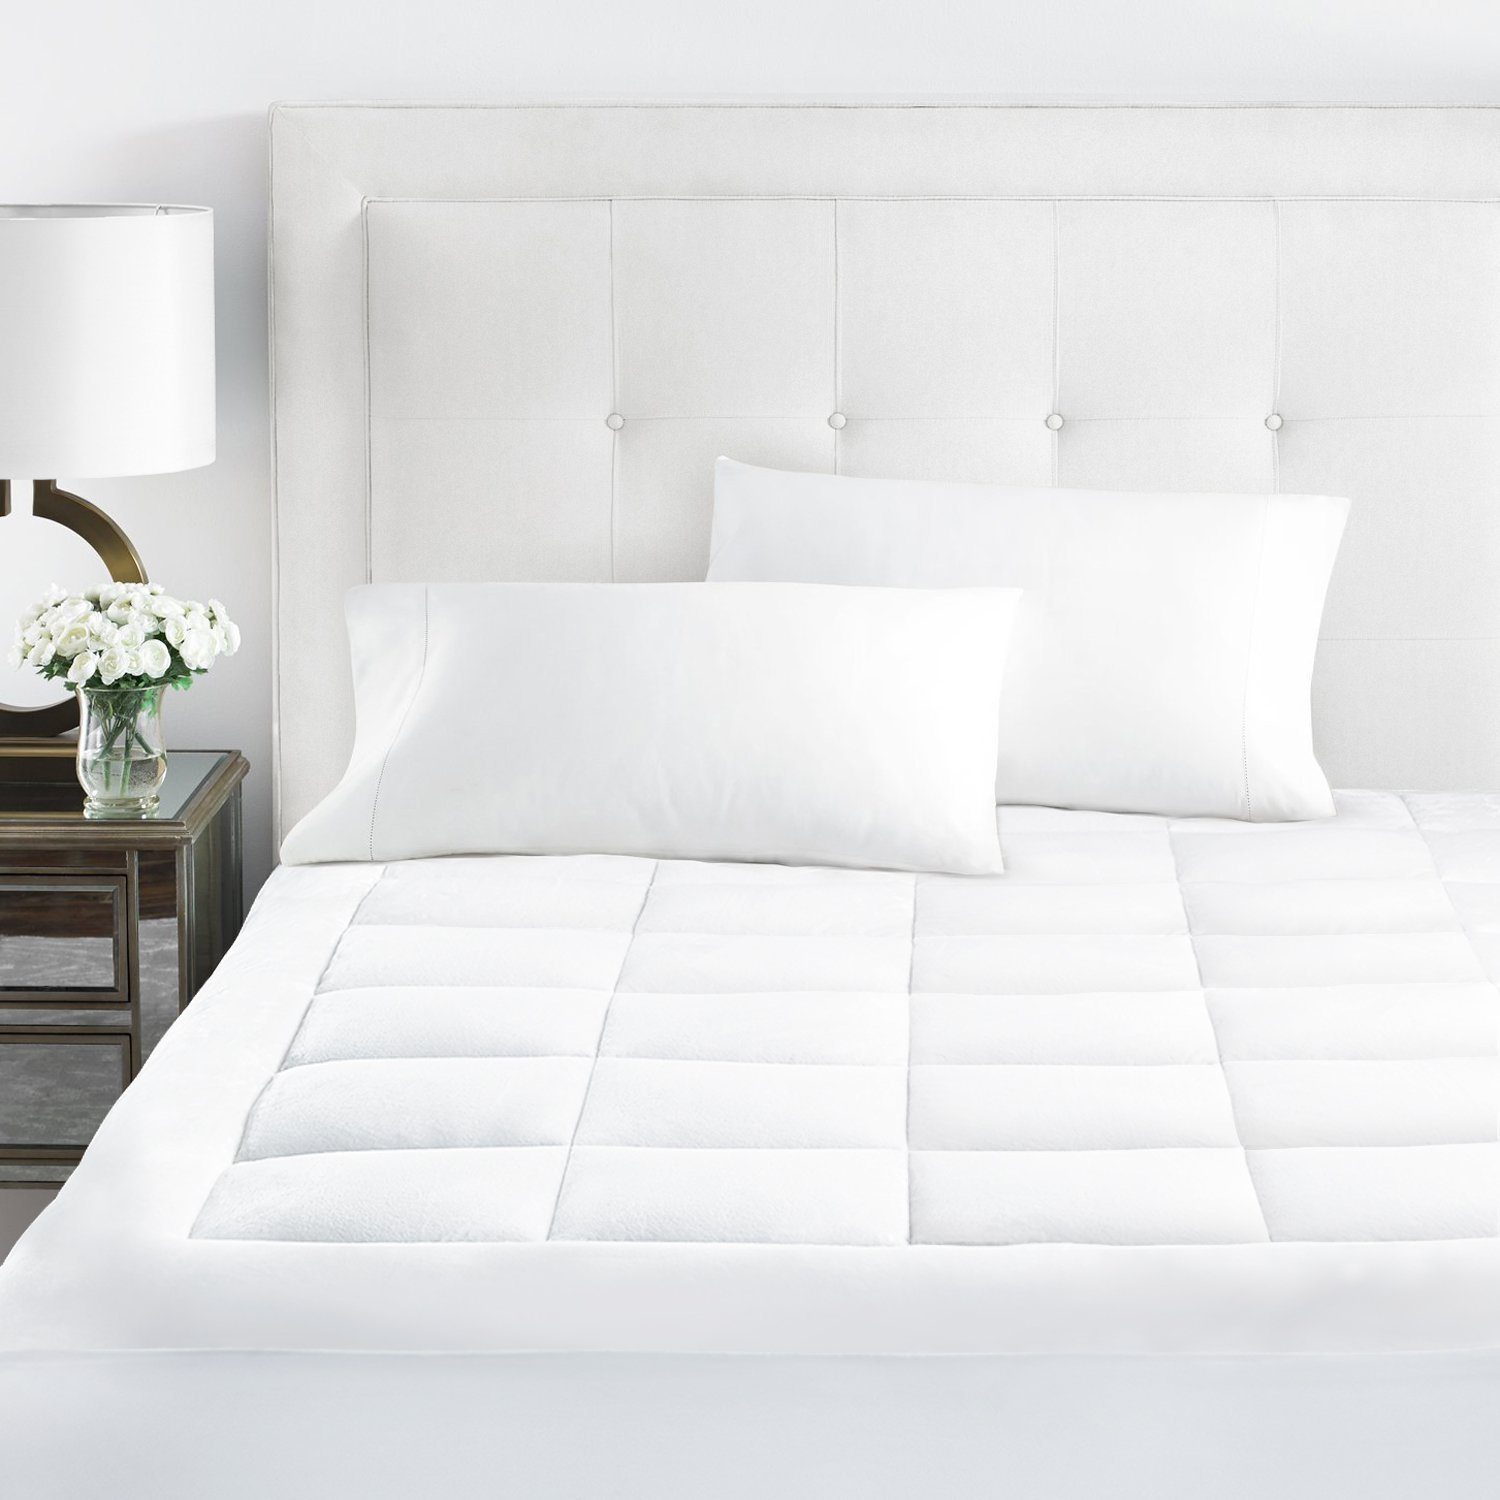 Beckham Hotel Collection Premium Microplush Mattress Pad - Hypoallergenic Ultra Soft Overfilled Topper with Deep Fit -Cal King